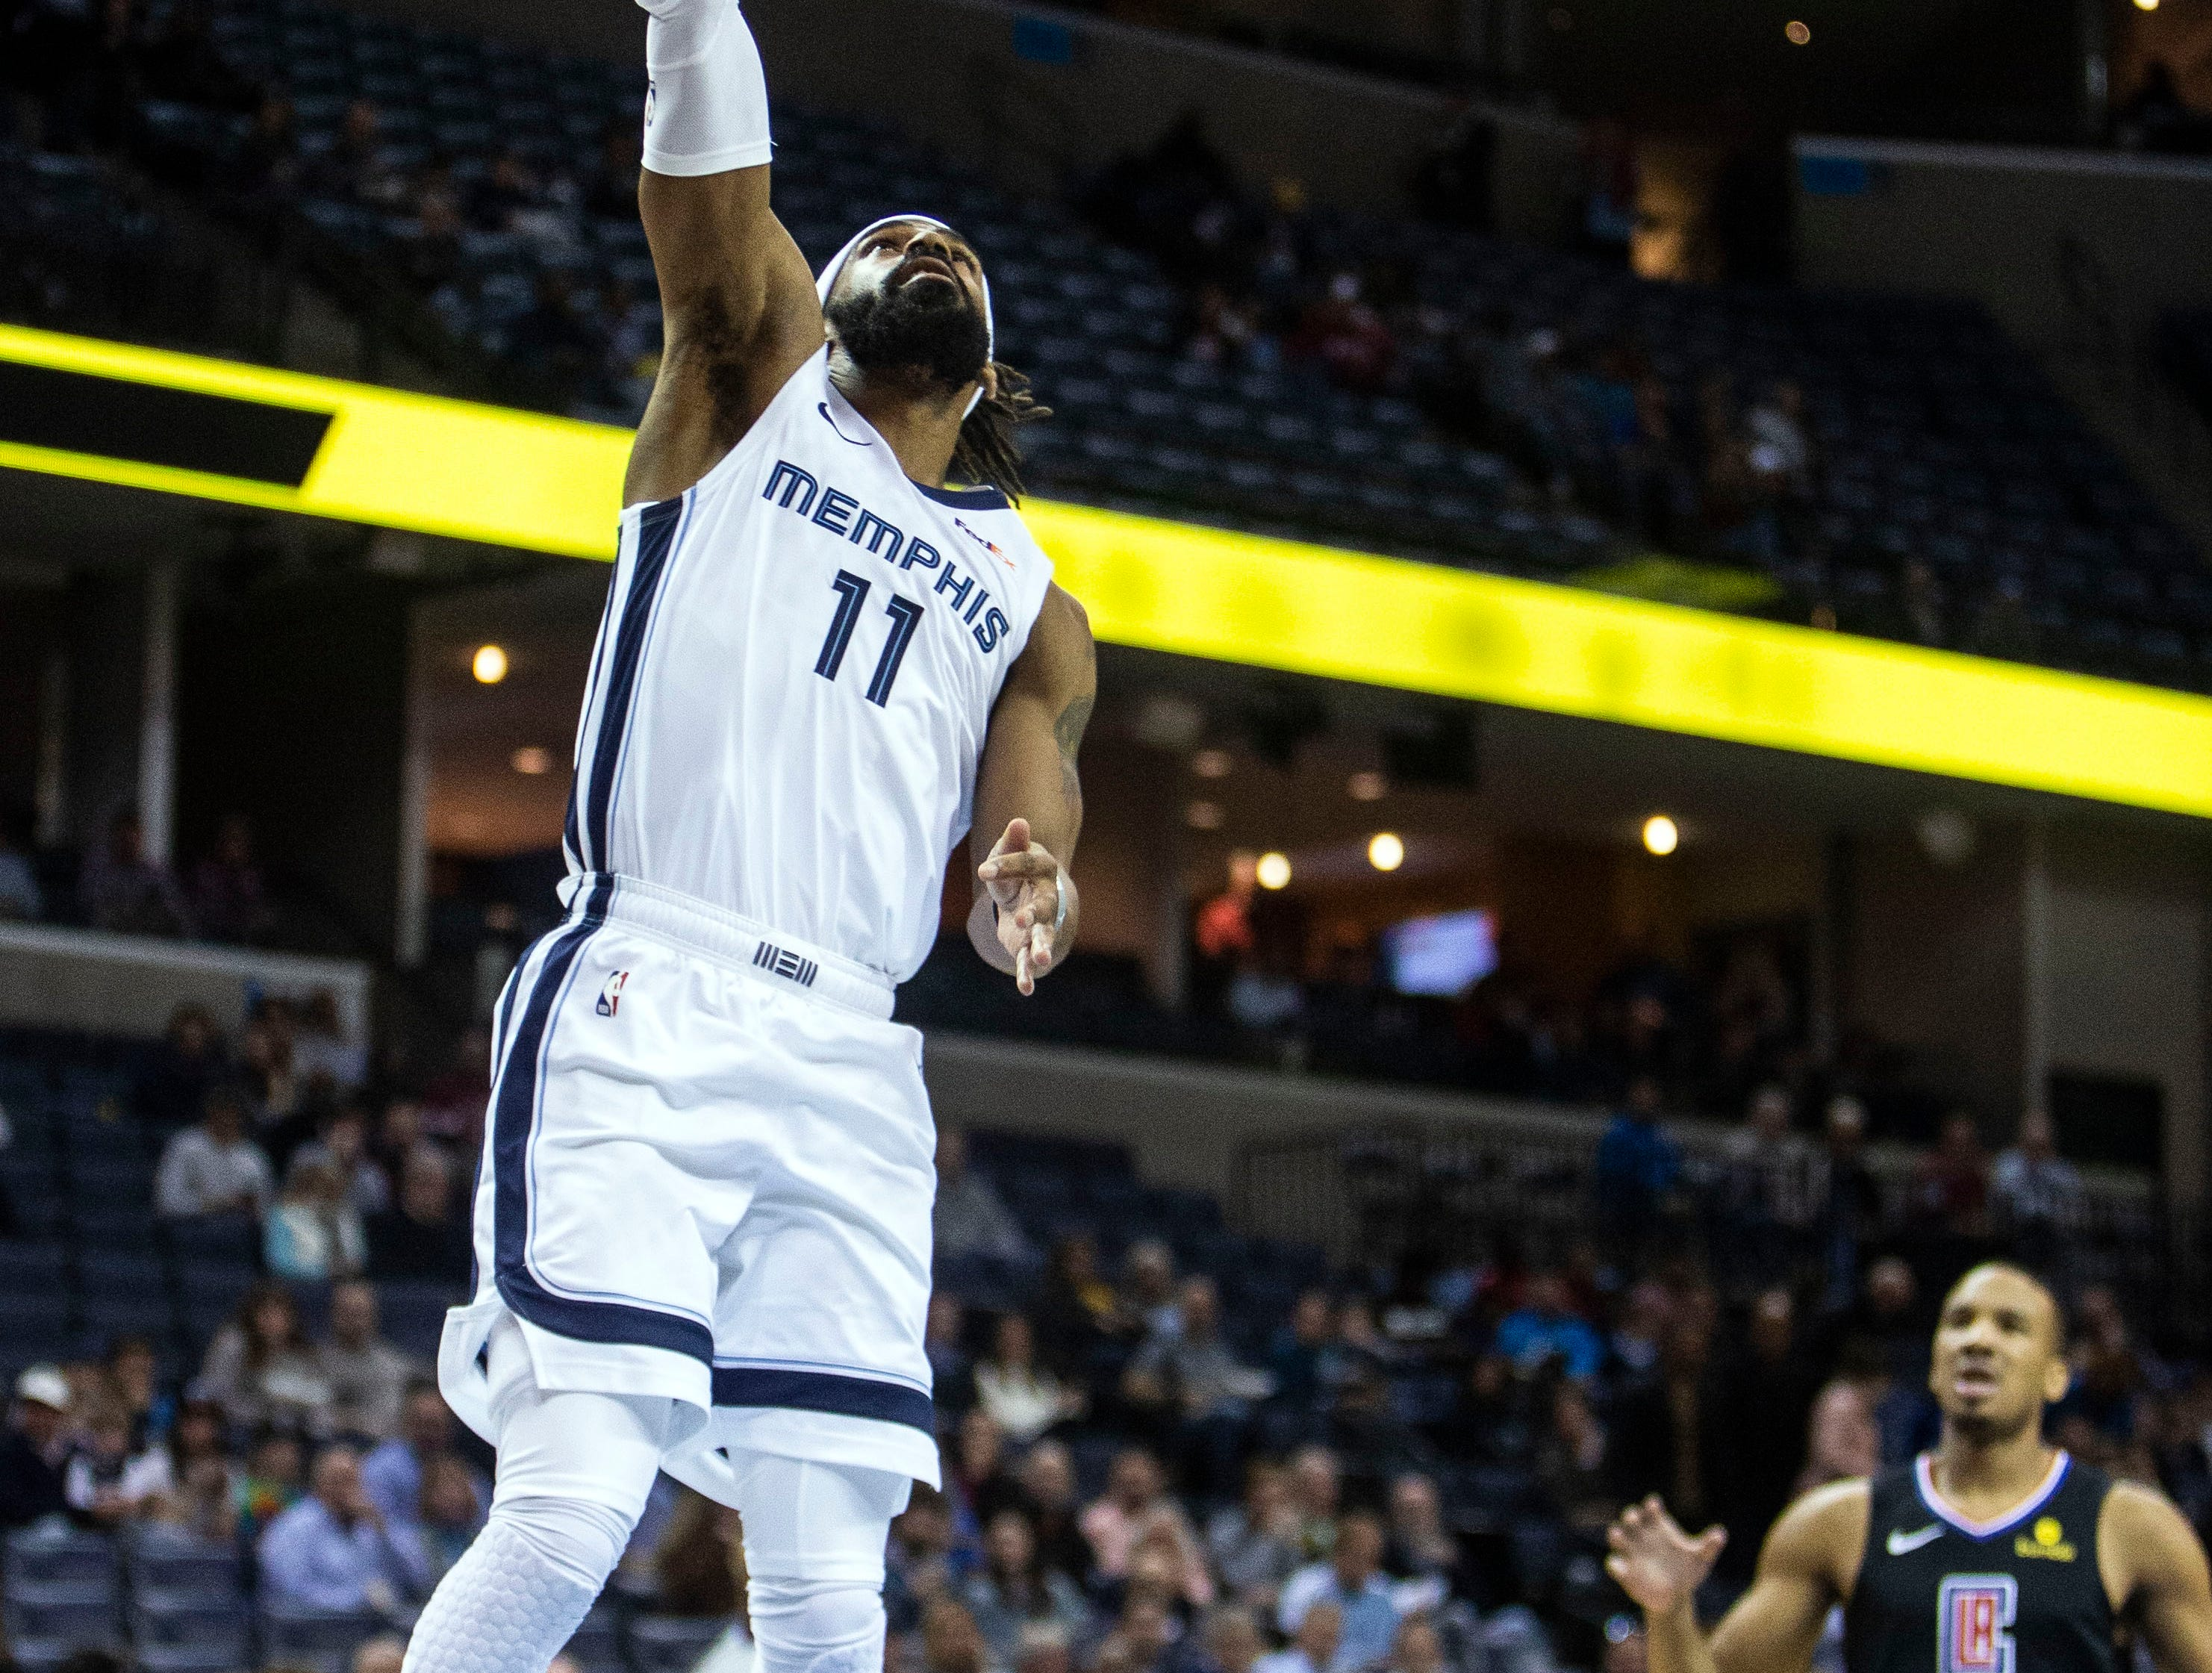 Memphis Grizzles guard Mike Conley (11) shoots during the first half of  a NBA basketball game between the Memphis Grizzlies and the  Los Angeles Clippers in the Fedex Forum, Wednesday, Dec. 5, 2018.